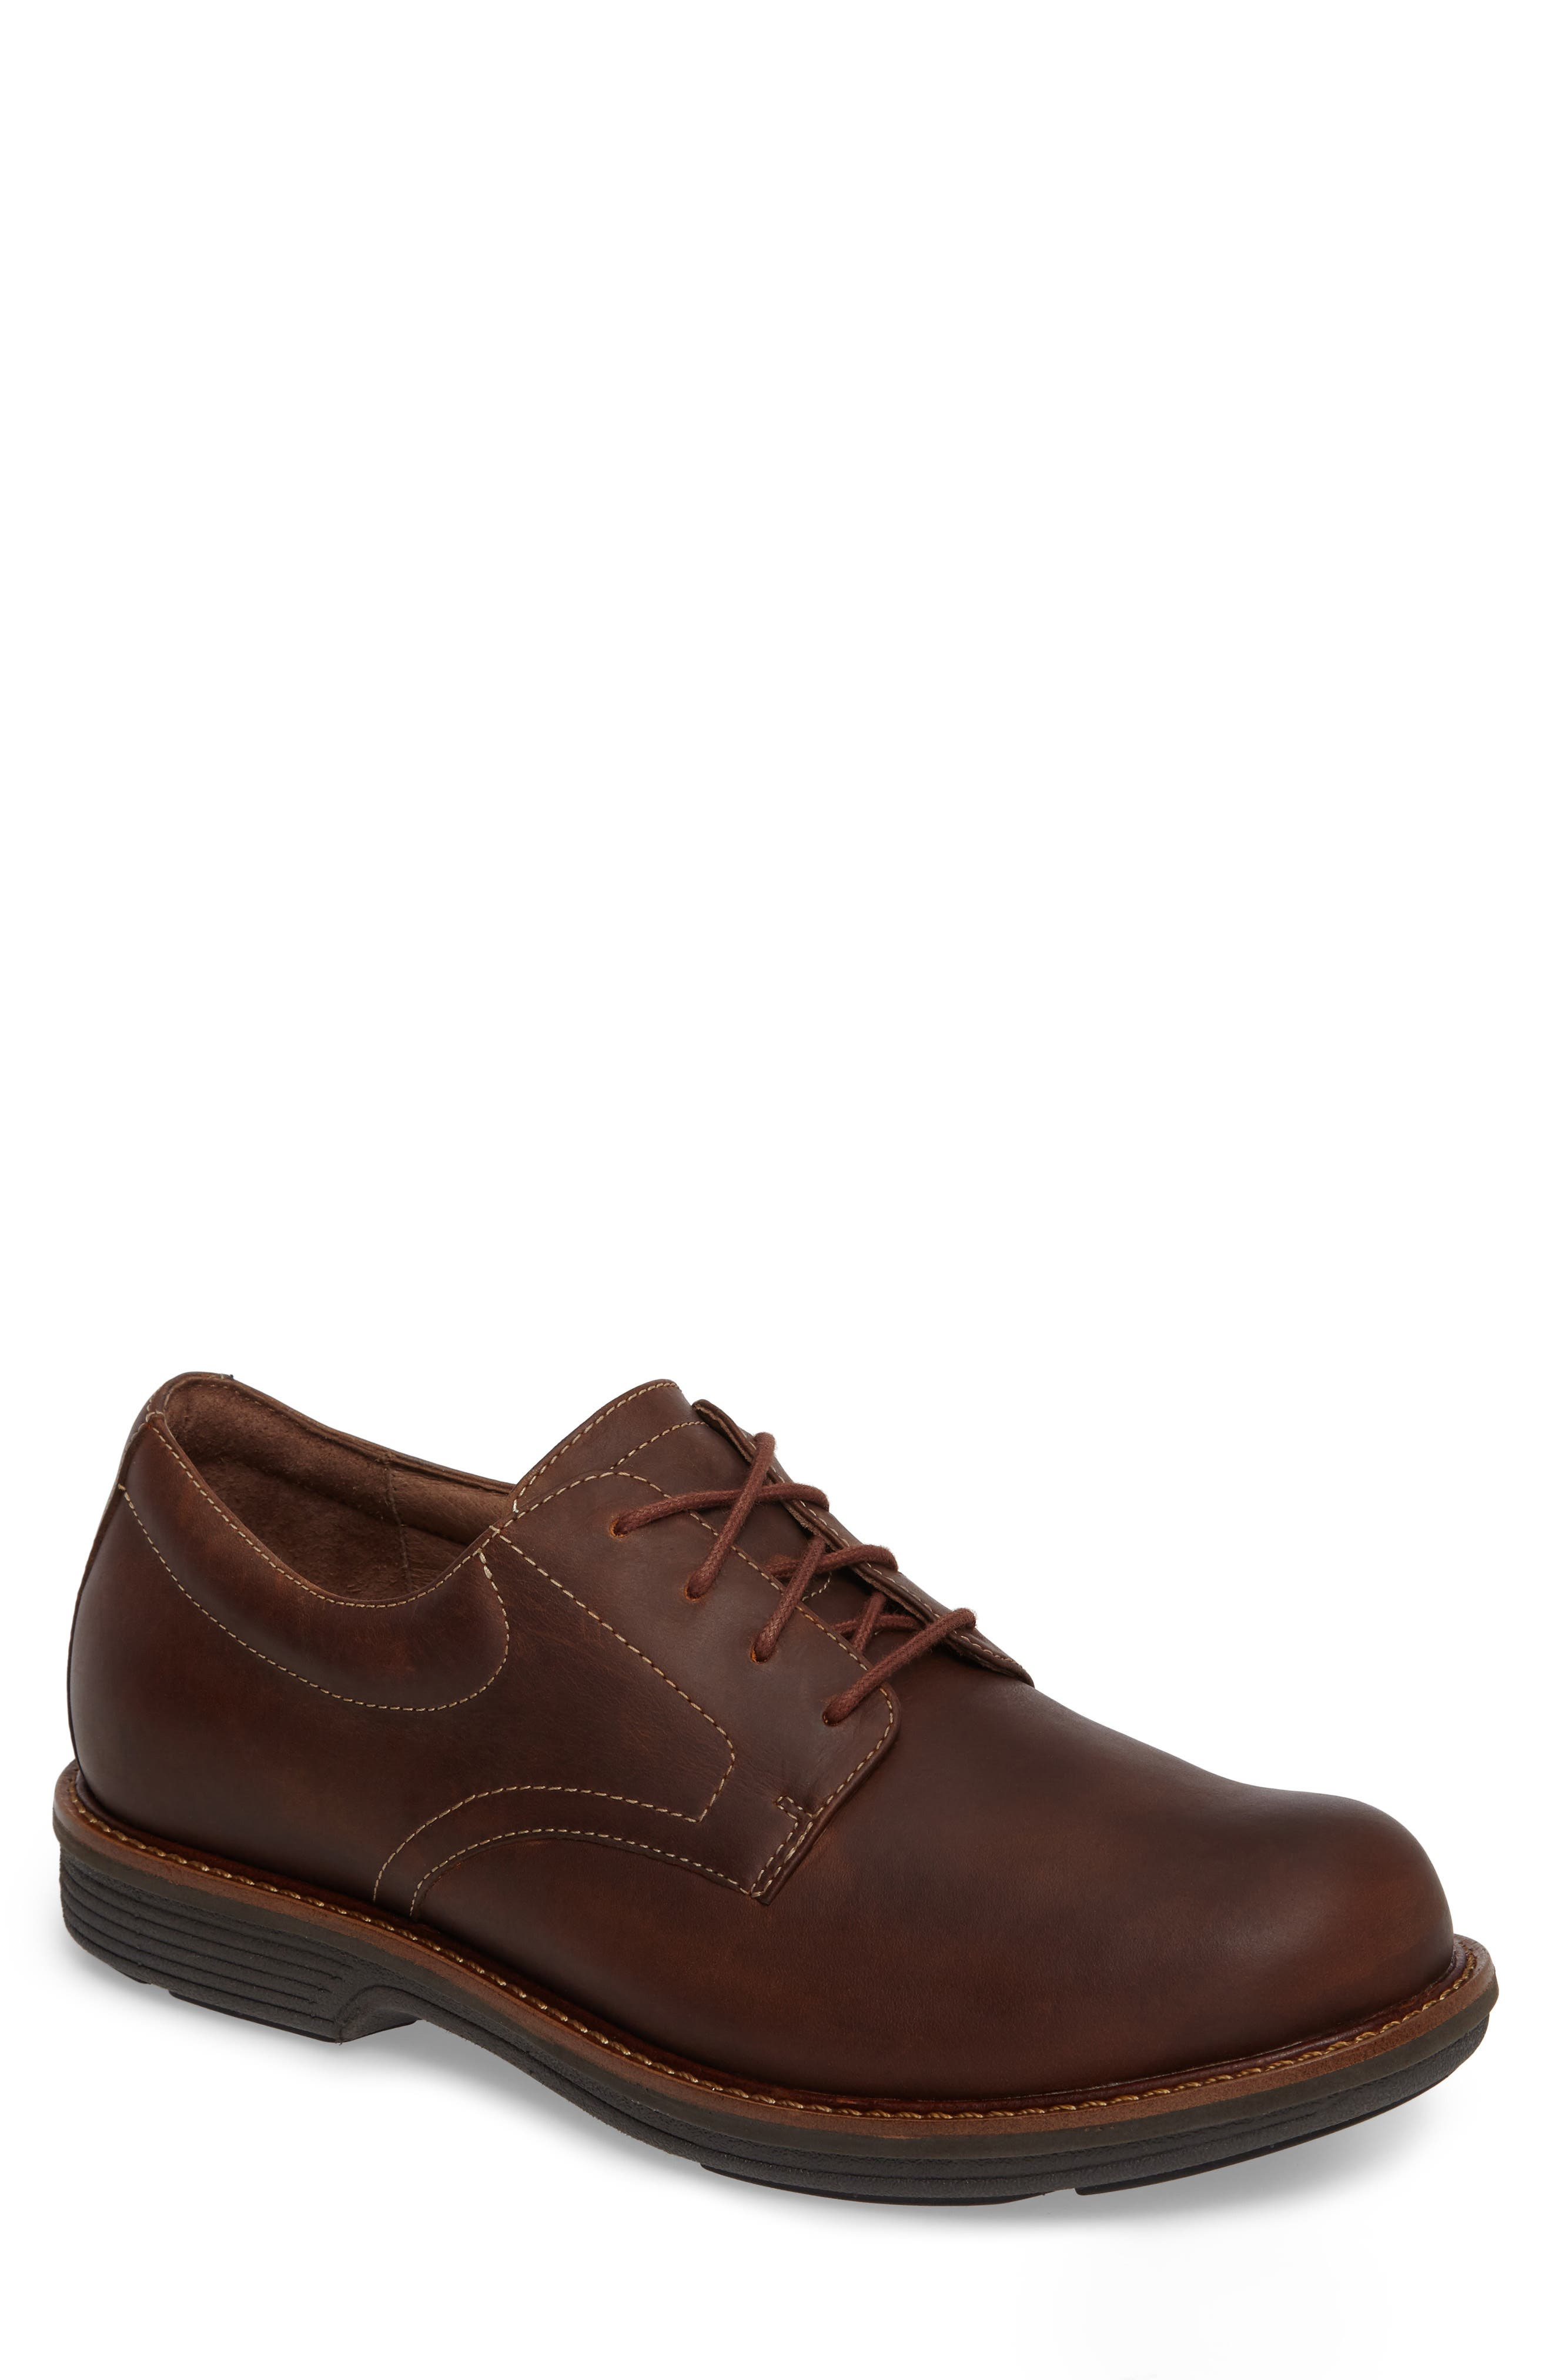 'Josh' Plain Toe Derby,                             Main thumbnail 1, color,                             BROWN PULL-UP LEATHER